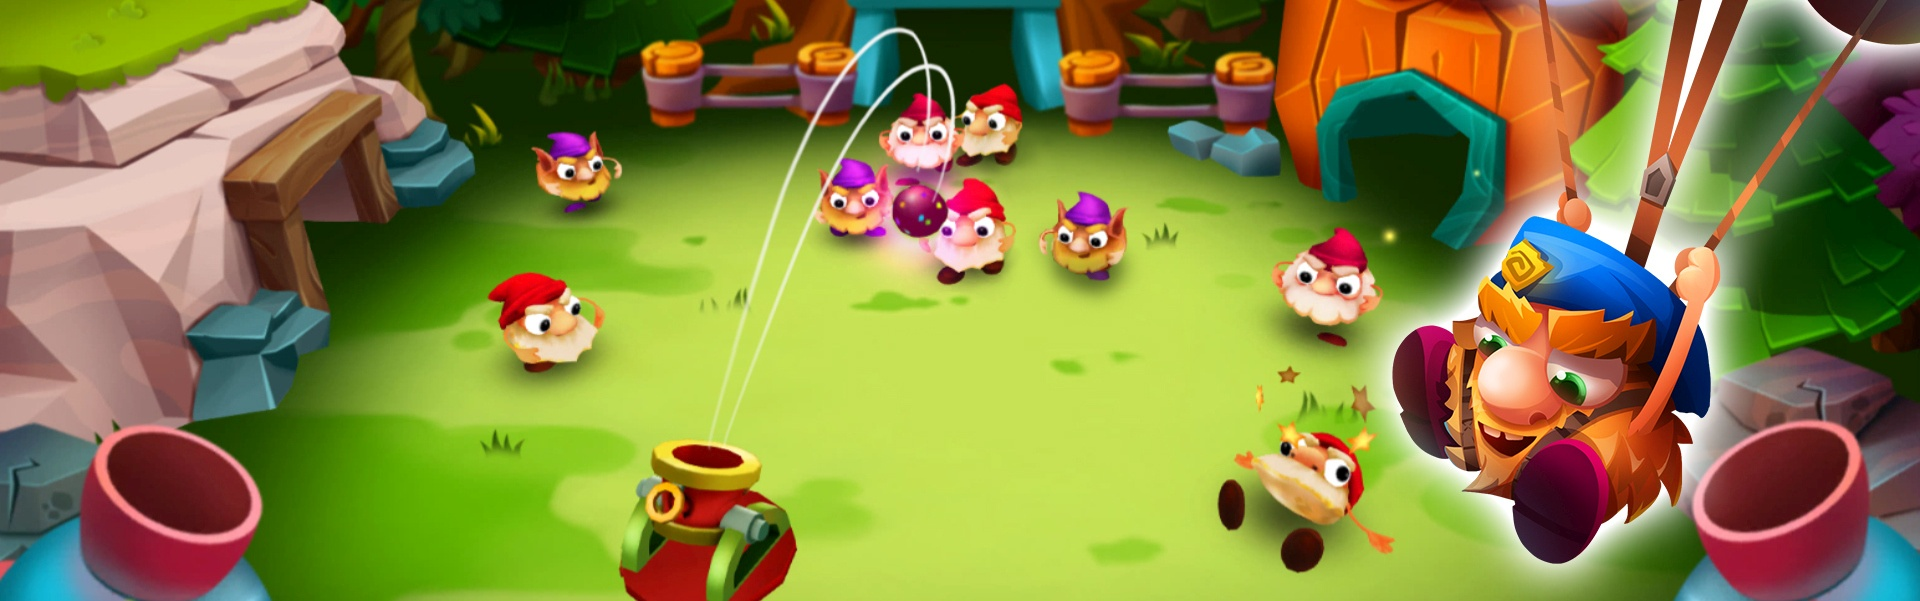 Candy Thieves - Tale of Gnomes Steam Key GLOBAL